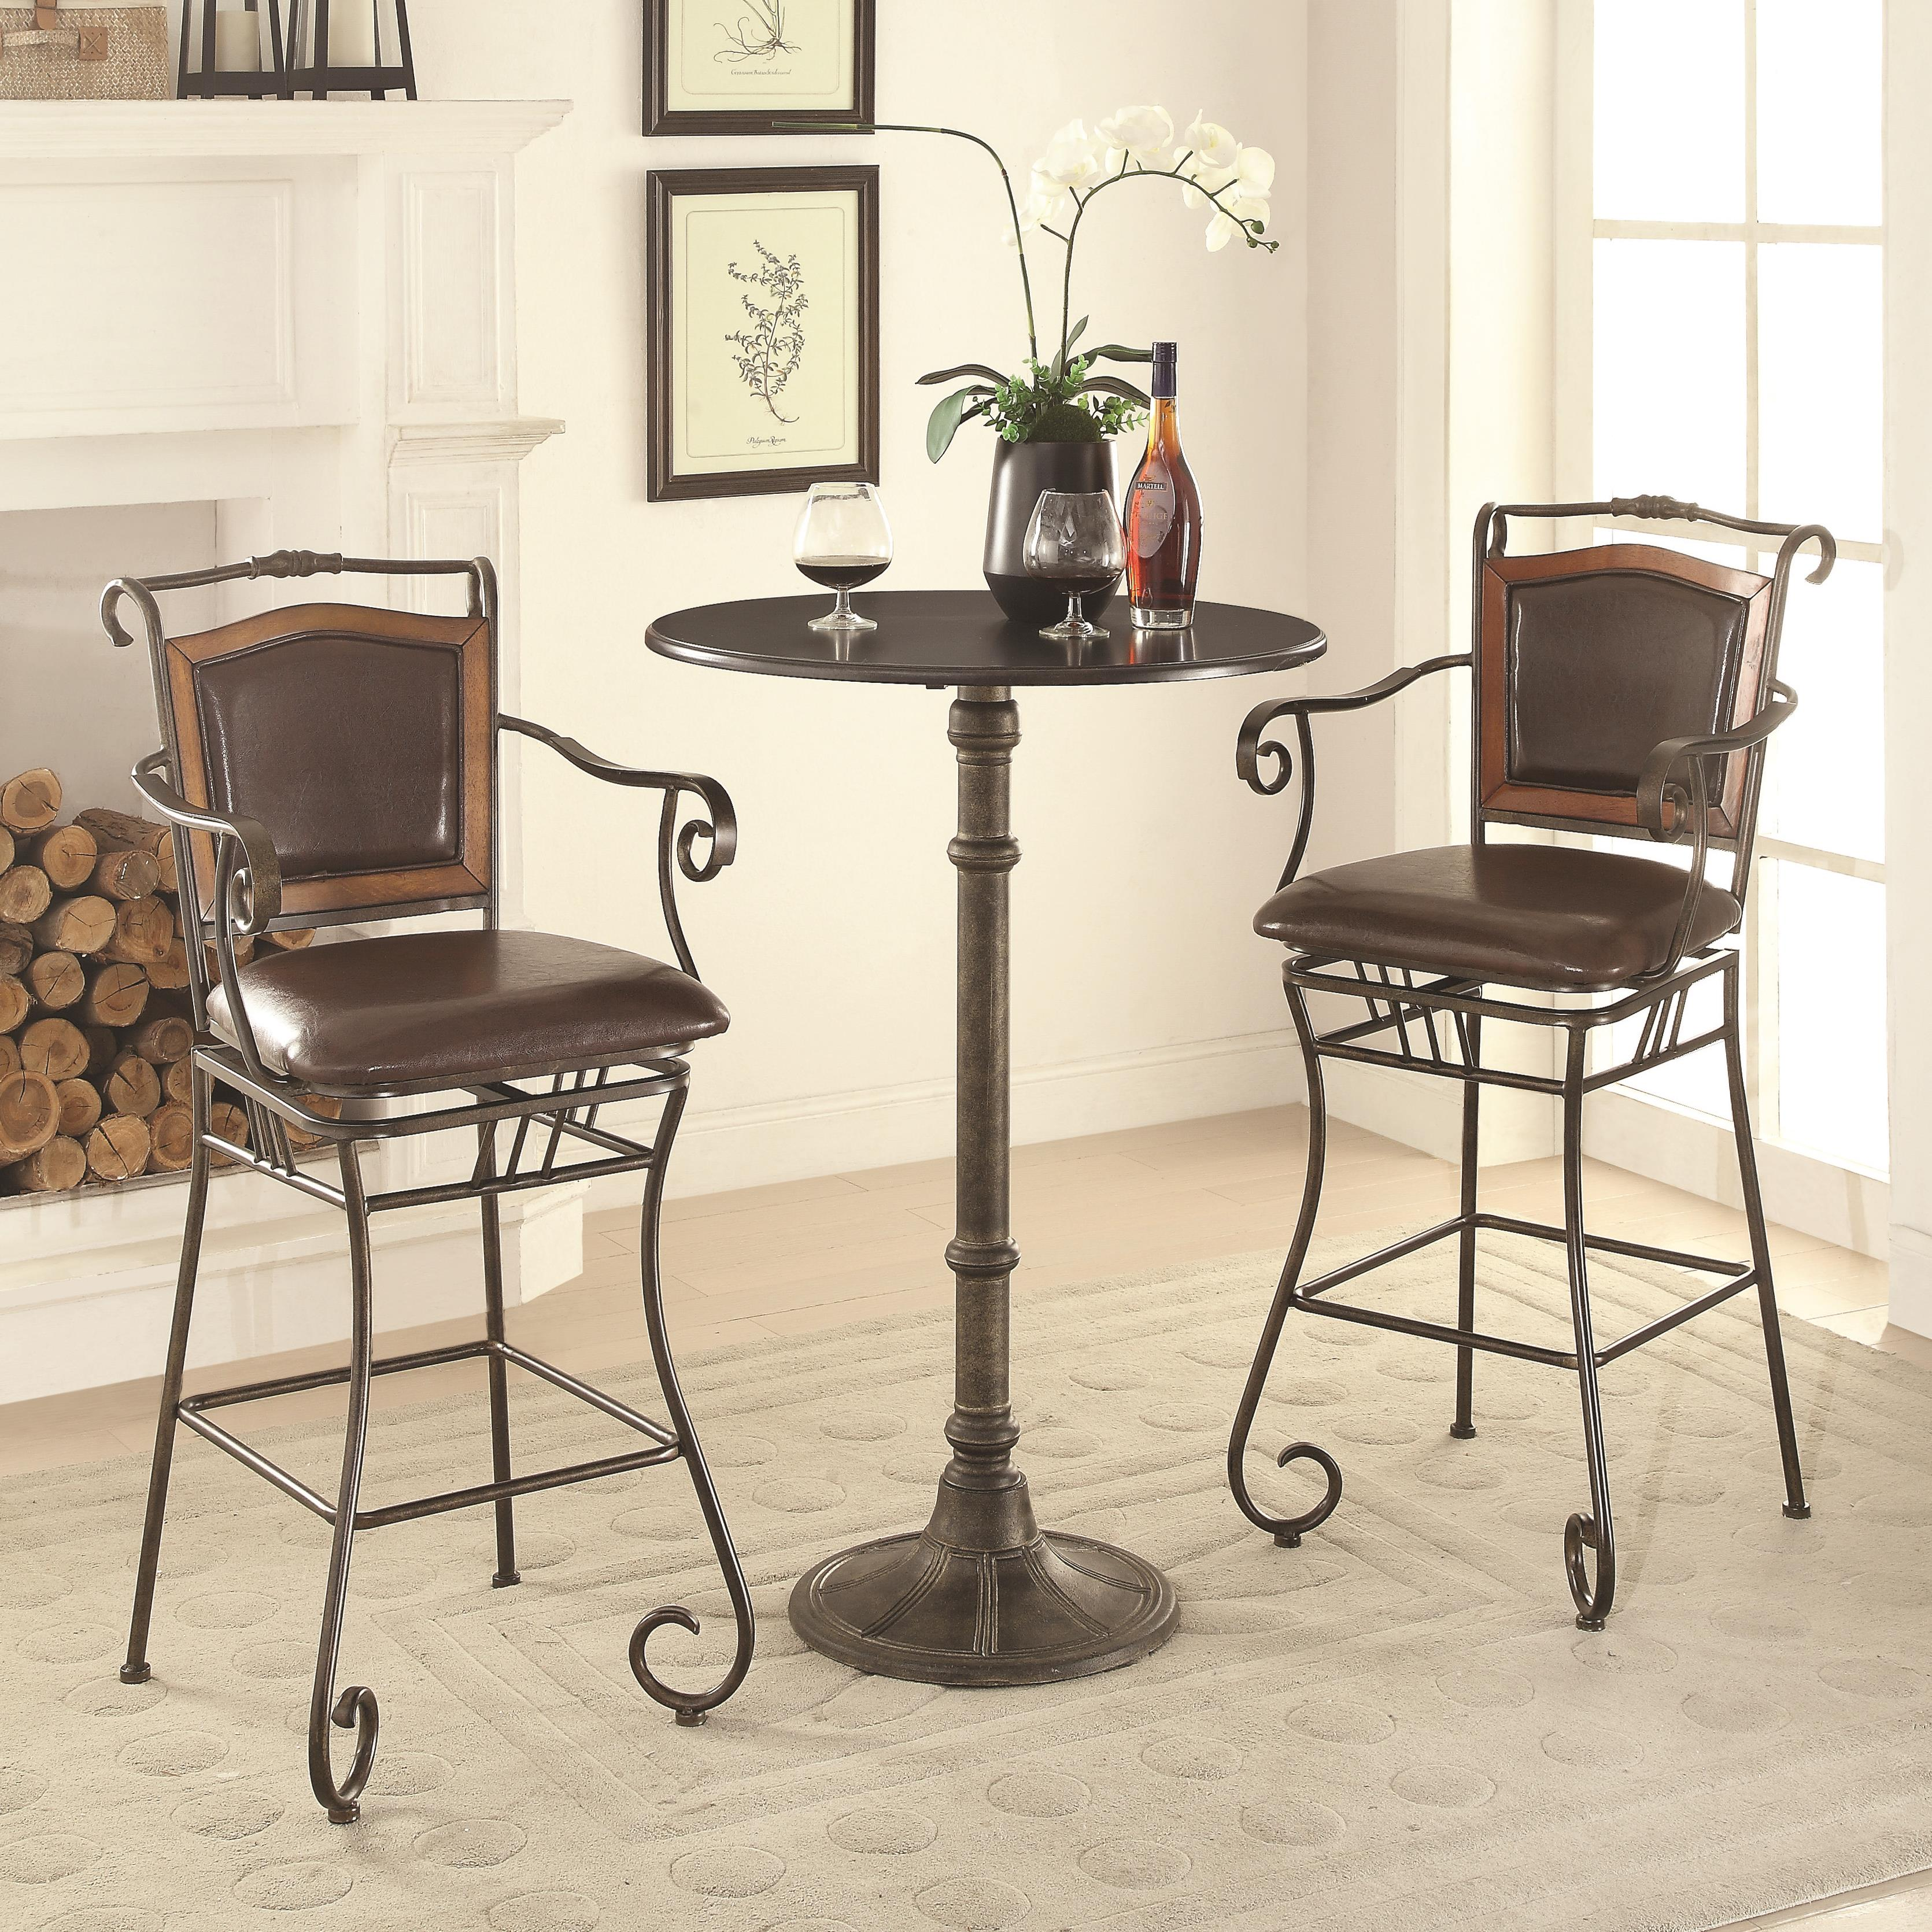 Coaster Oswego Pub Table Set - Item Number 100064+2x100159 & Coaster Oswego Pub Table Set with Bar Stools | Value City Furniture ...